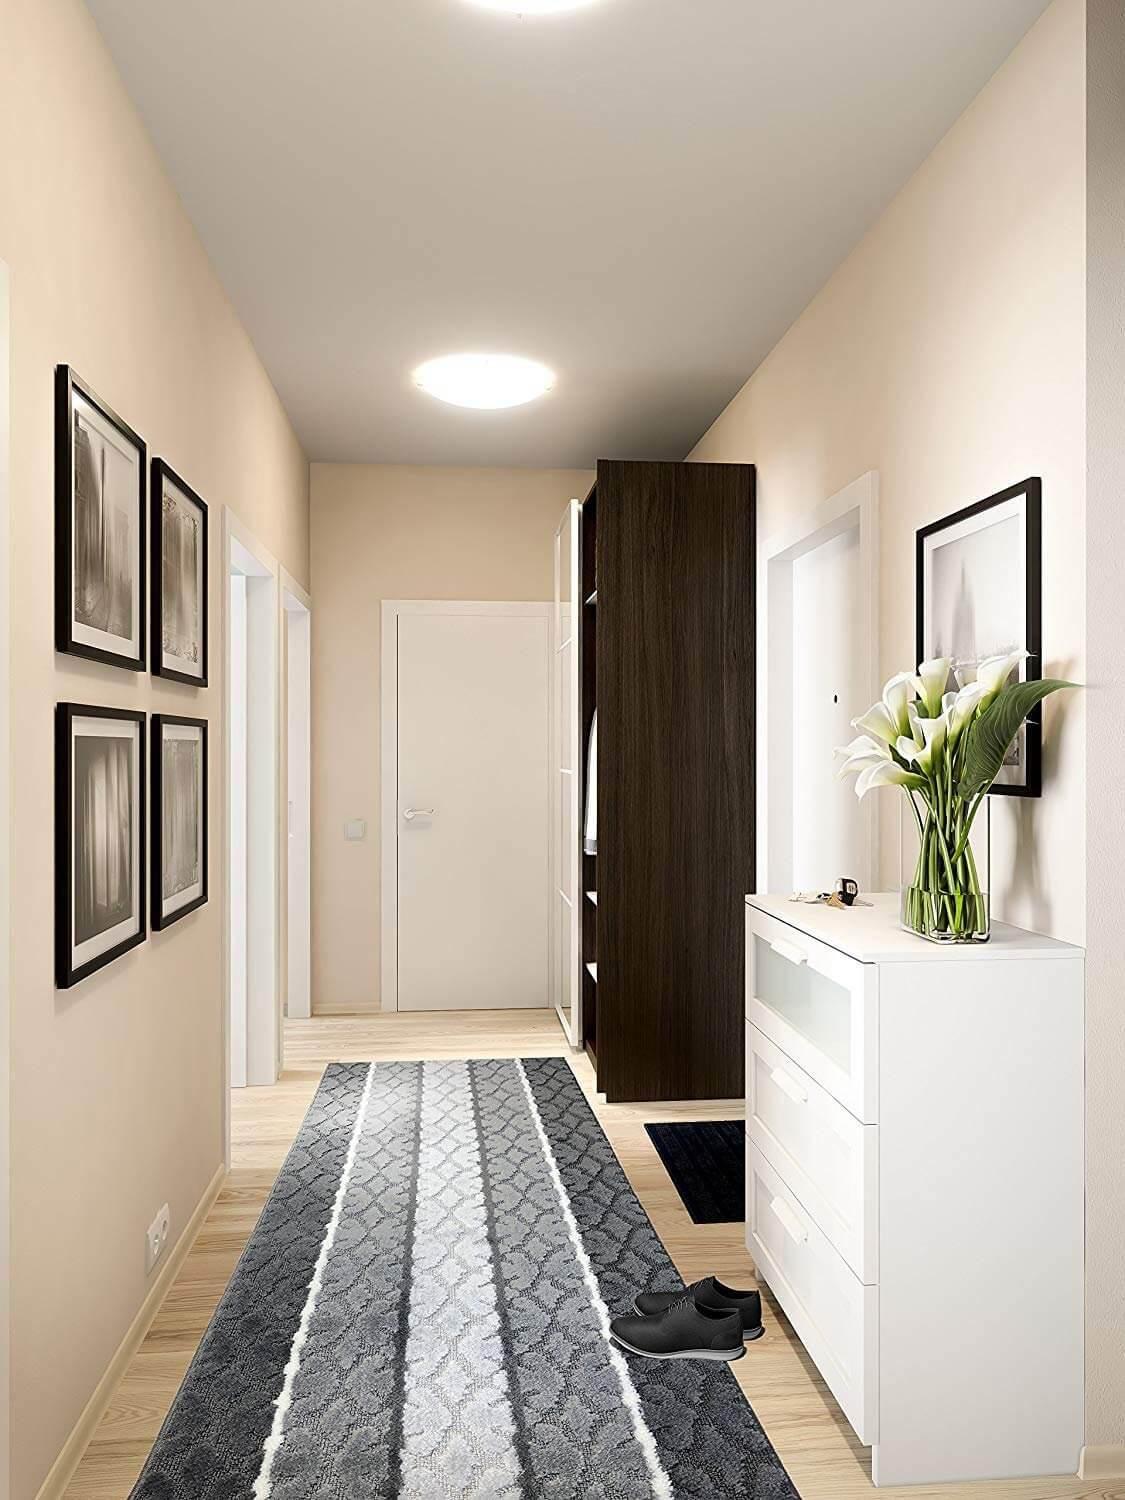 Grayscale Stripped Hallway Runner Rug